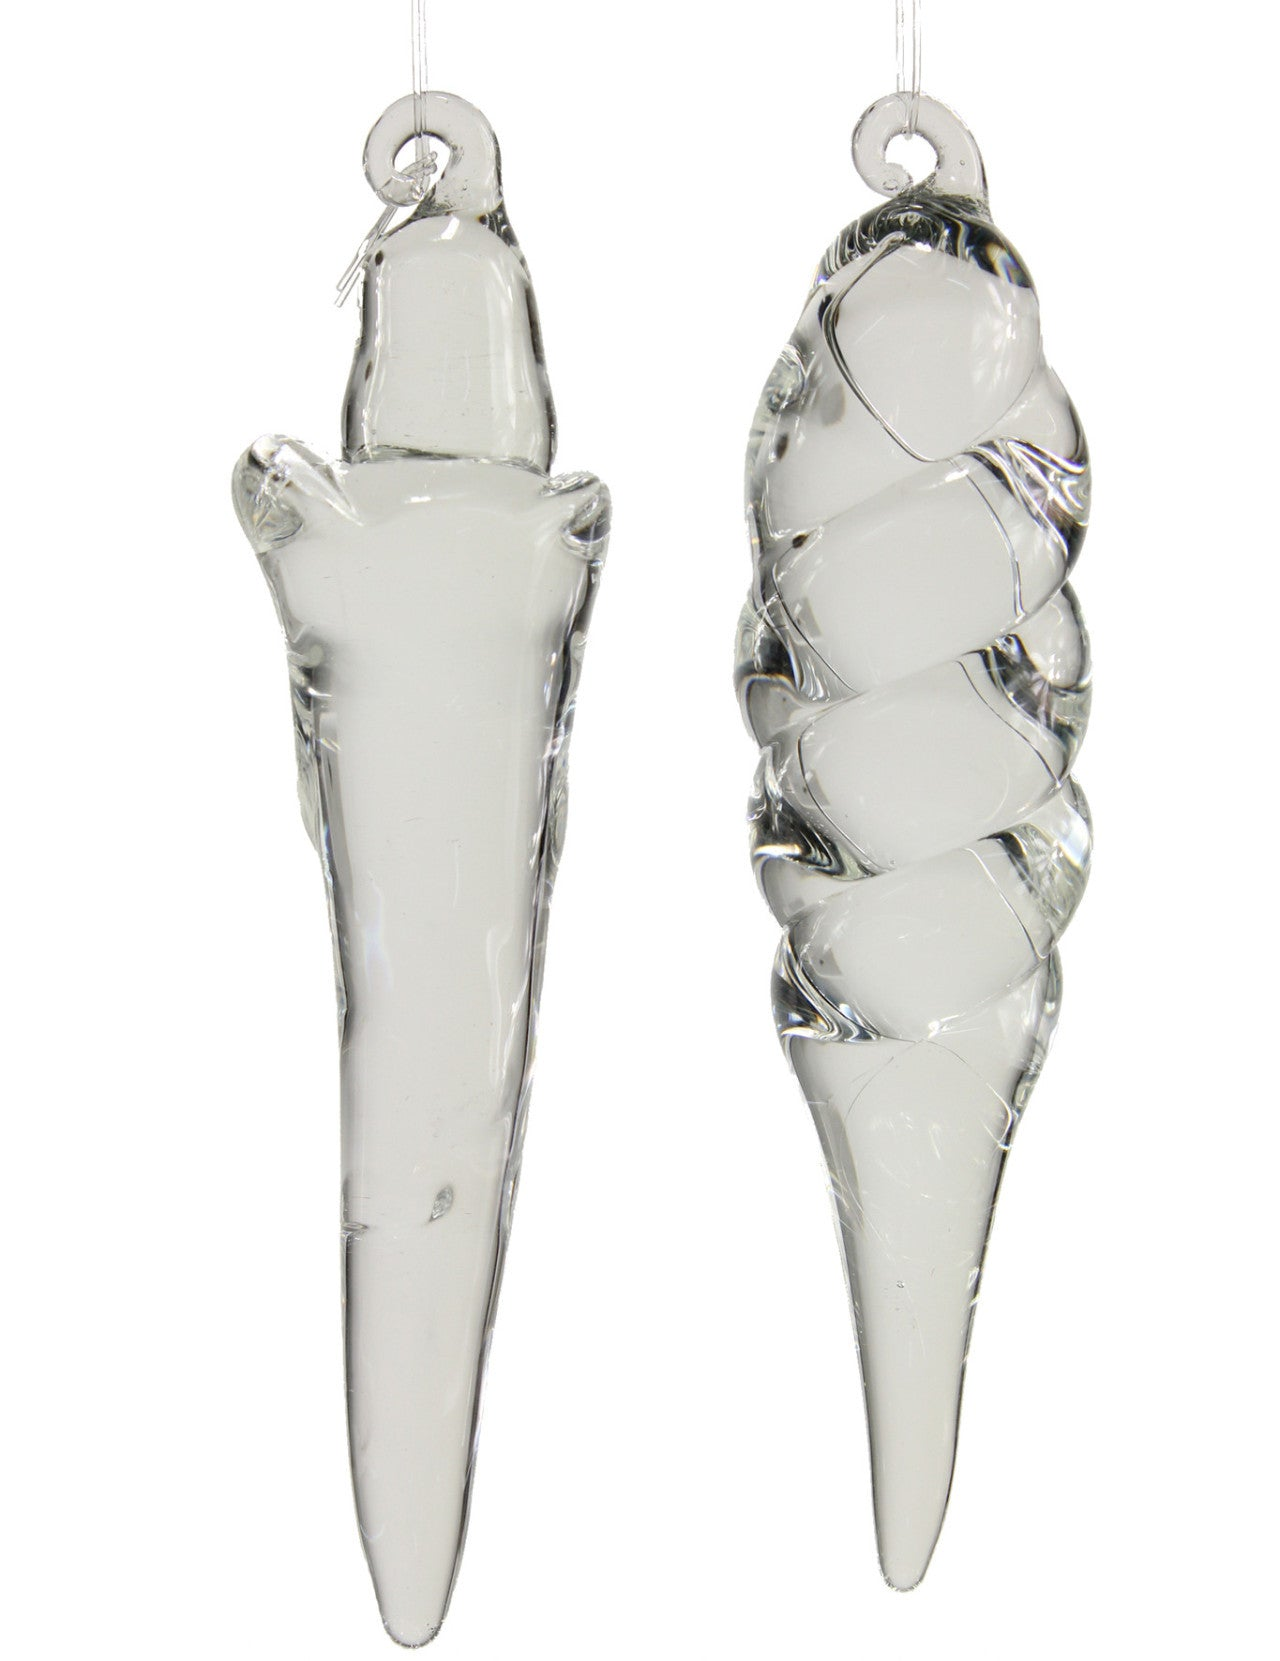 Free-Form Solid Glass Icicle Ornaments